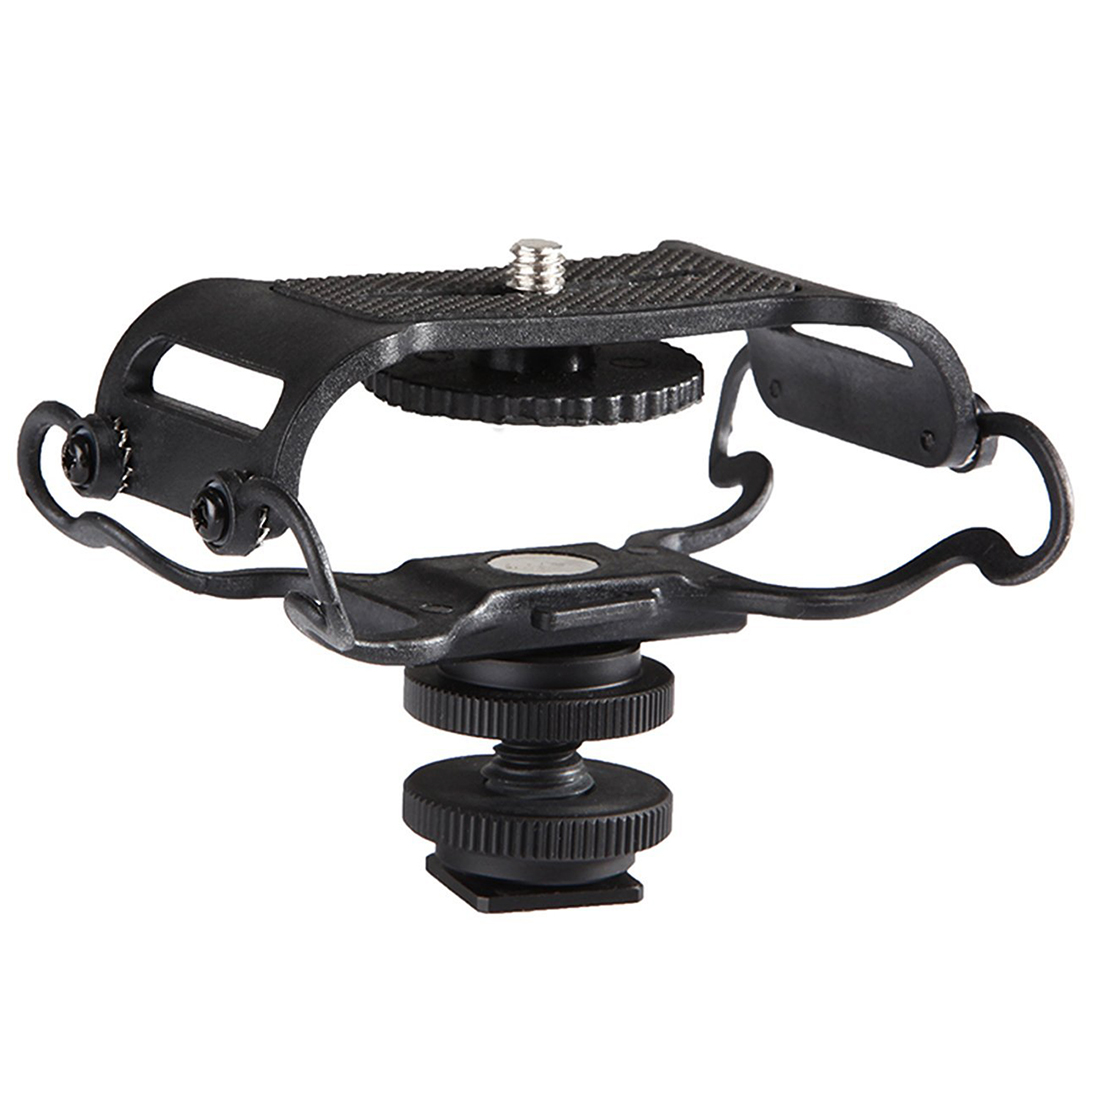 US $14 77 20% OFF|BOYA BY C10 Universal Microphone and Portable Recorder  Shock Mount Fits the Zoom H4n, H5, H6, Tascam-in Guitar Parts & Accessories